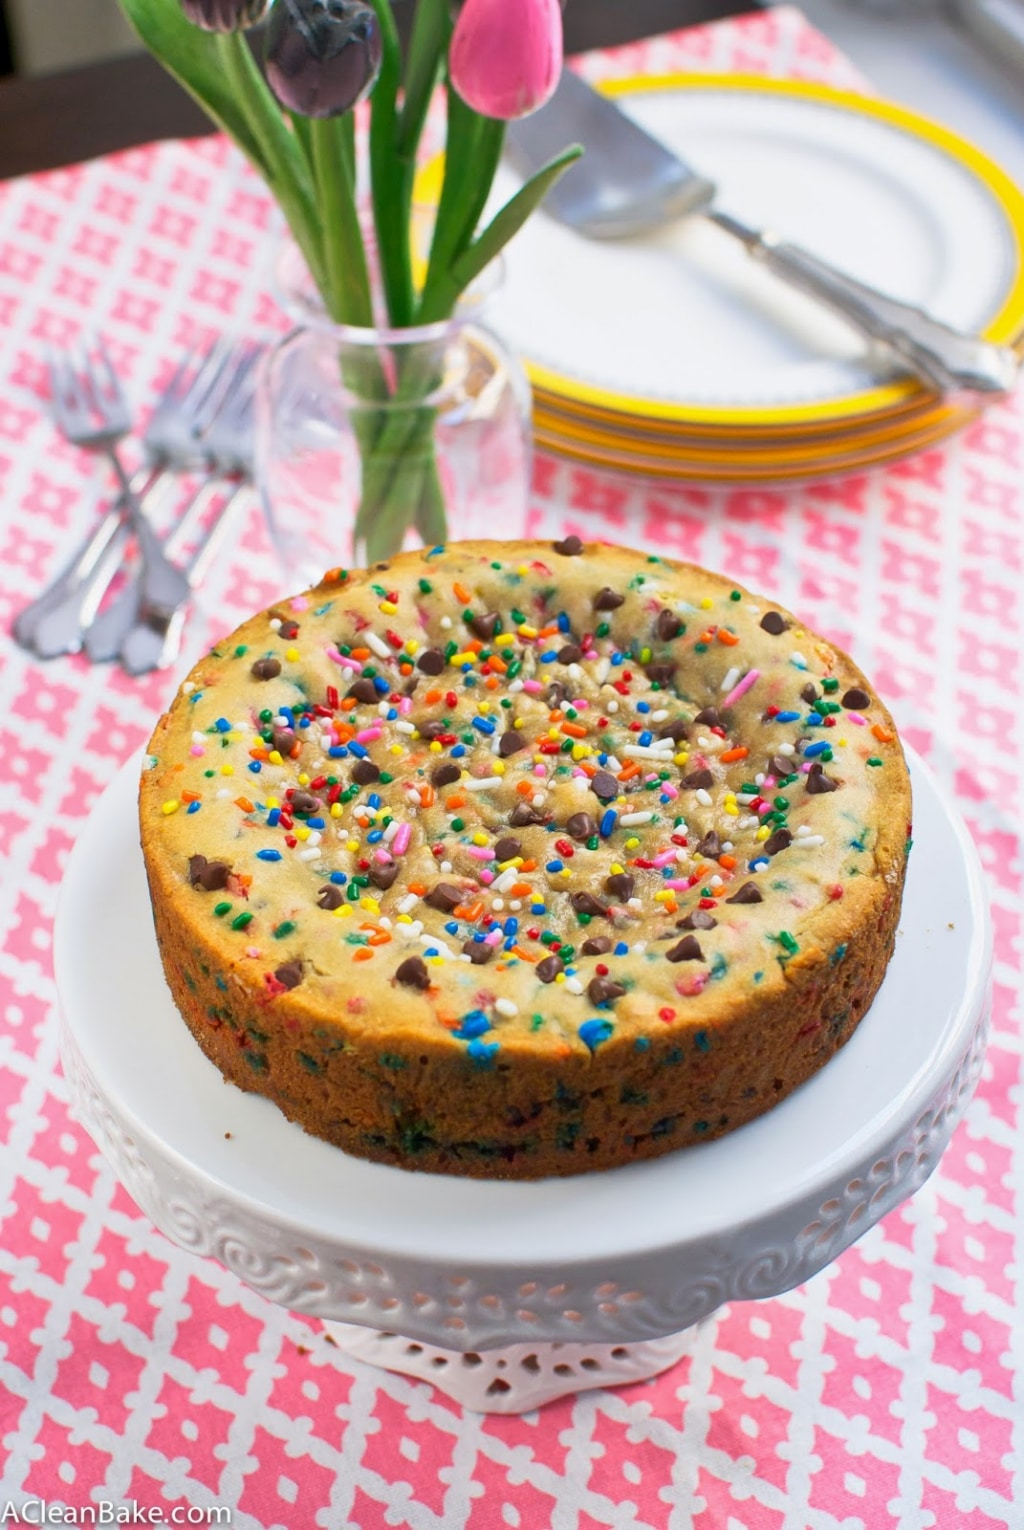 Gluten-Free and Lactose-Free Deep Dish Chocolate Chip Cookie Cake